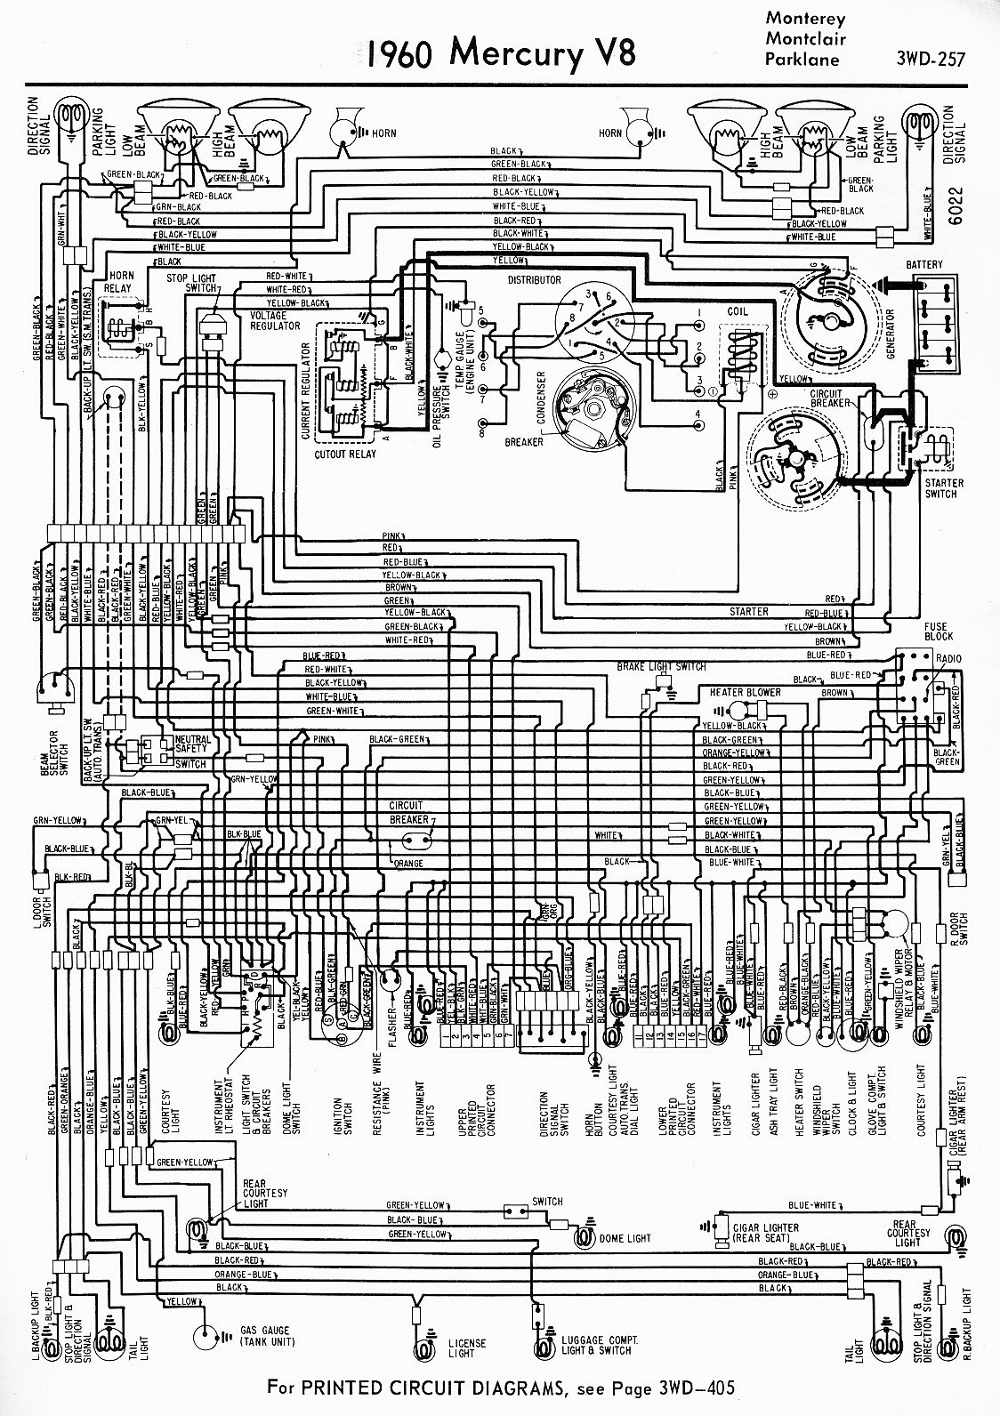 Mercury Mystique Wiring Diagram Get Free Image About Wiring Diagram